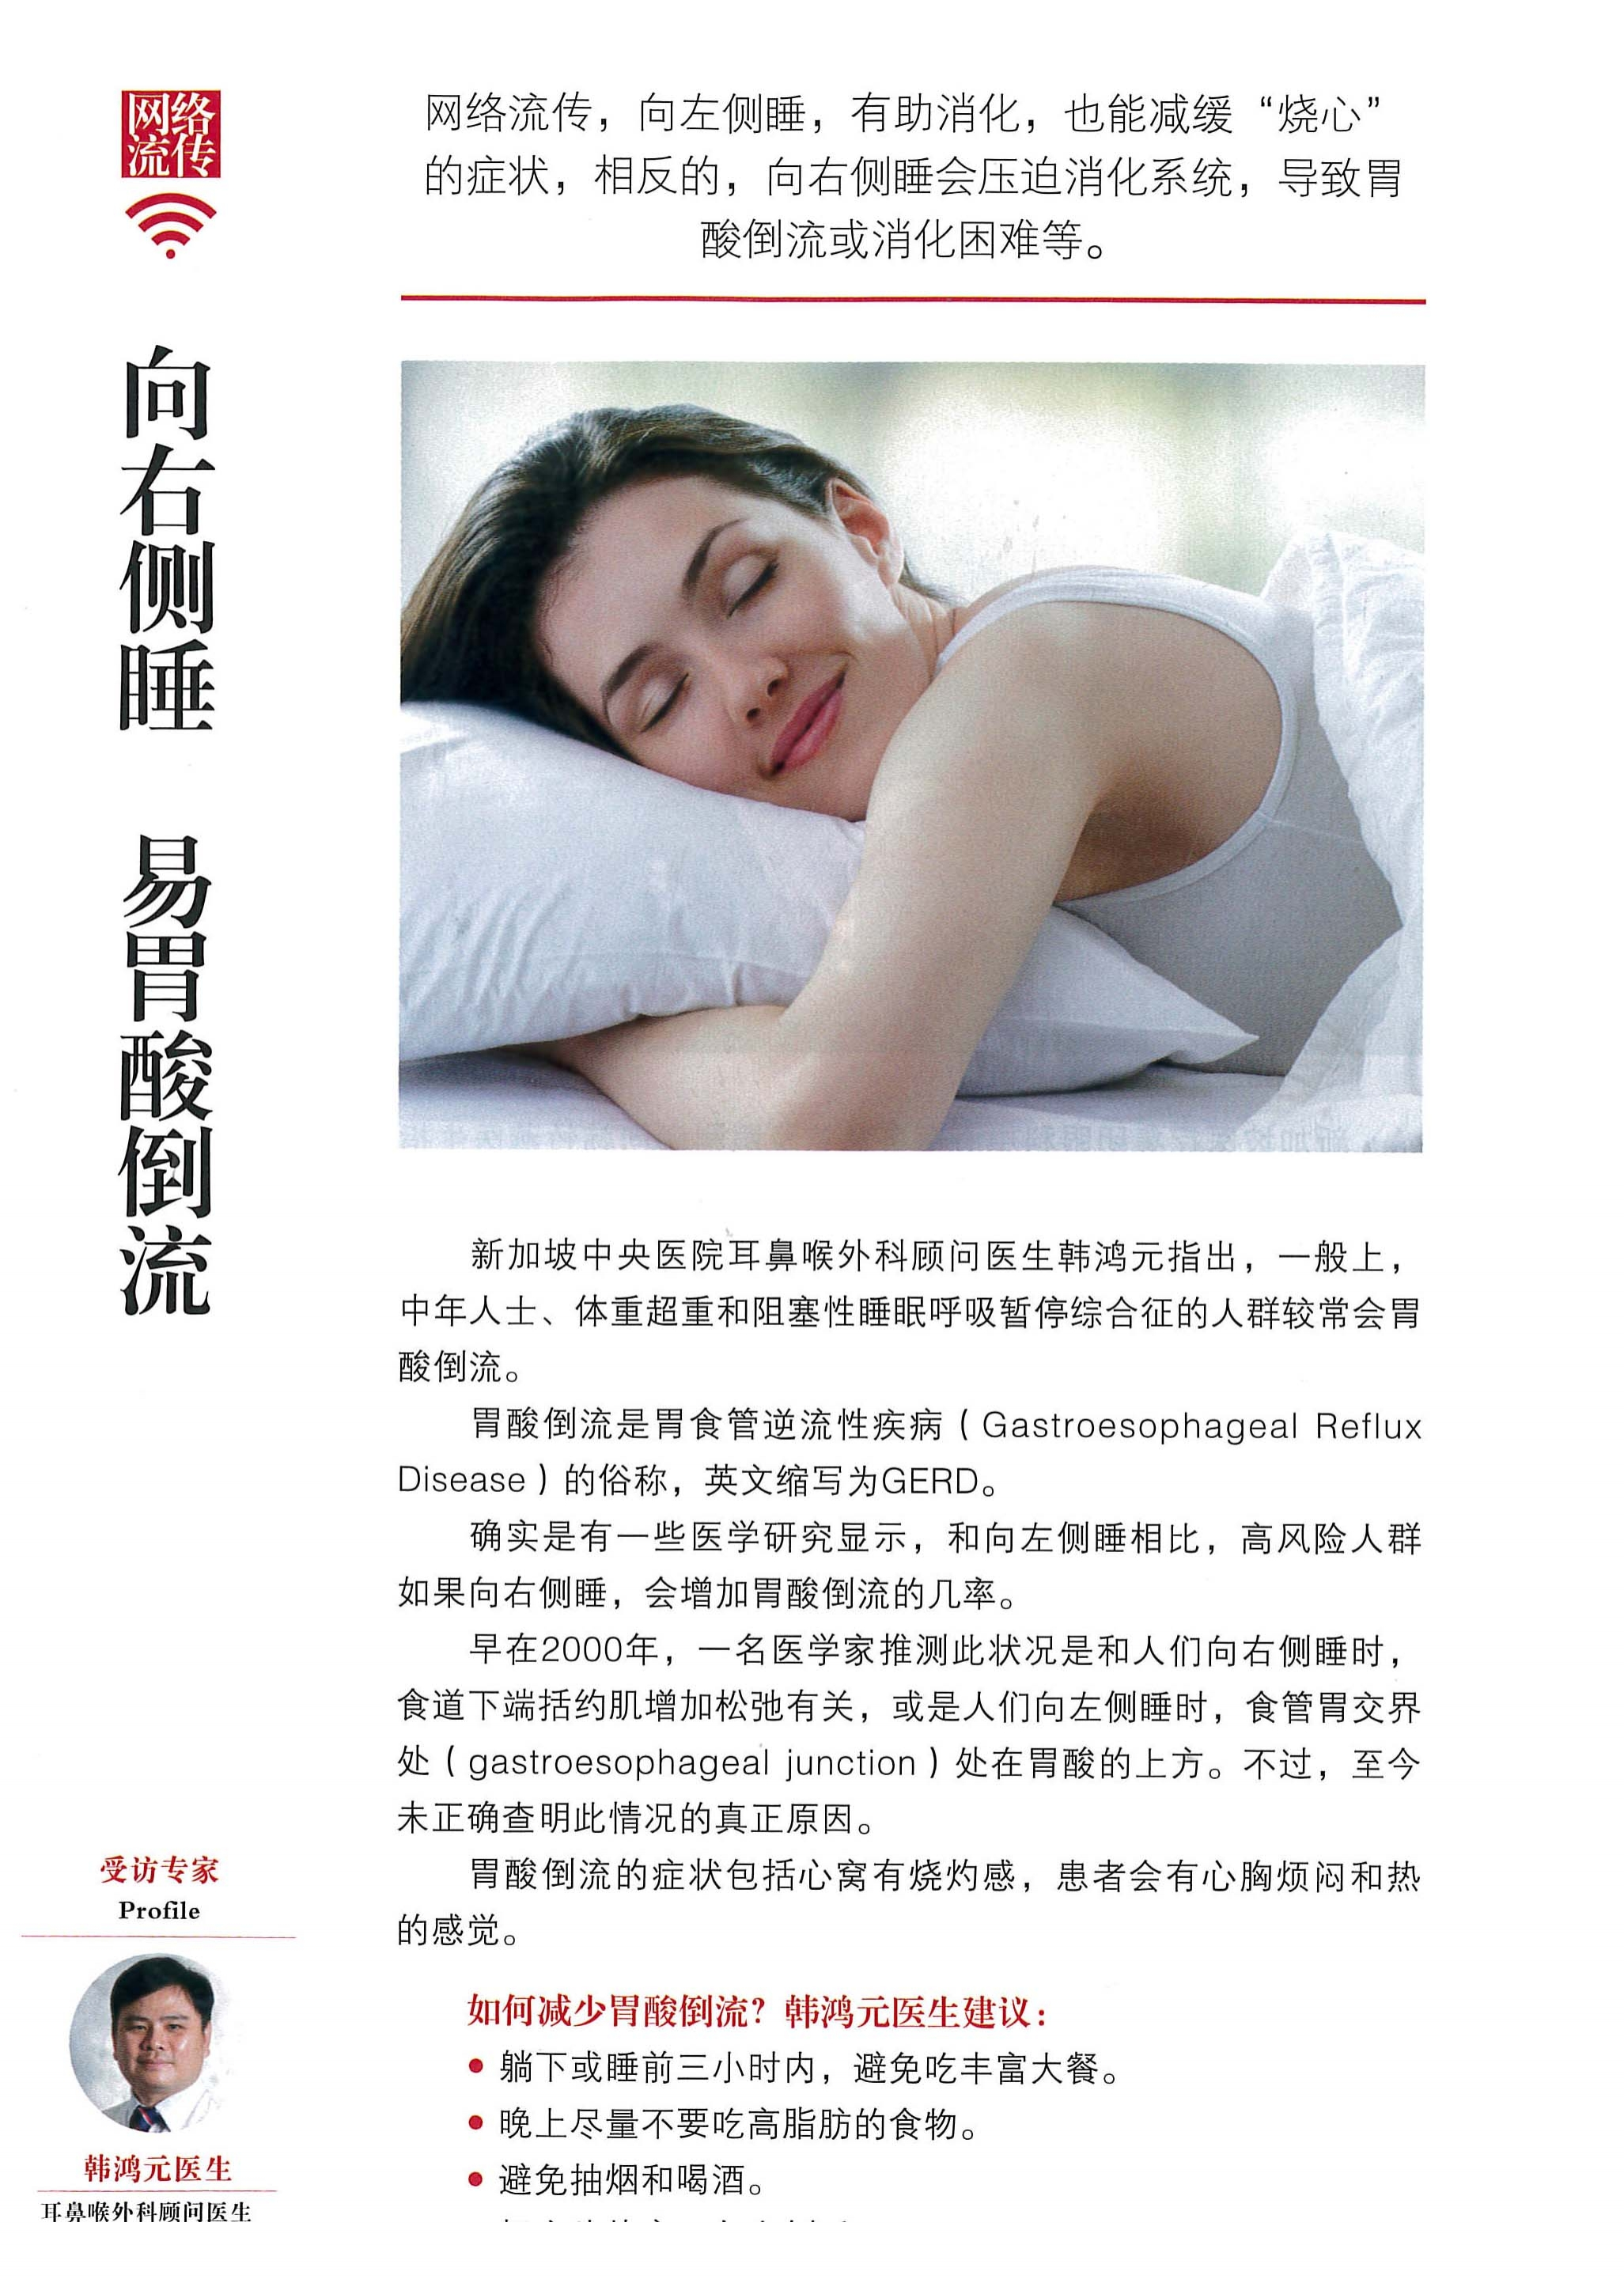 HealthNo1-Sep 16-Pg 120-Sleeping on the right side can easily lead to acid reflux.jpg